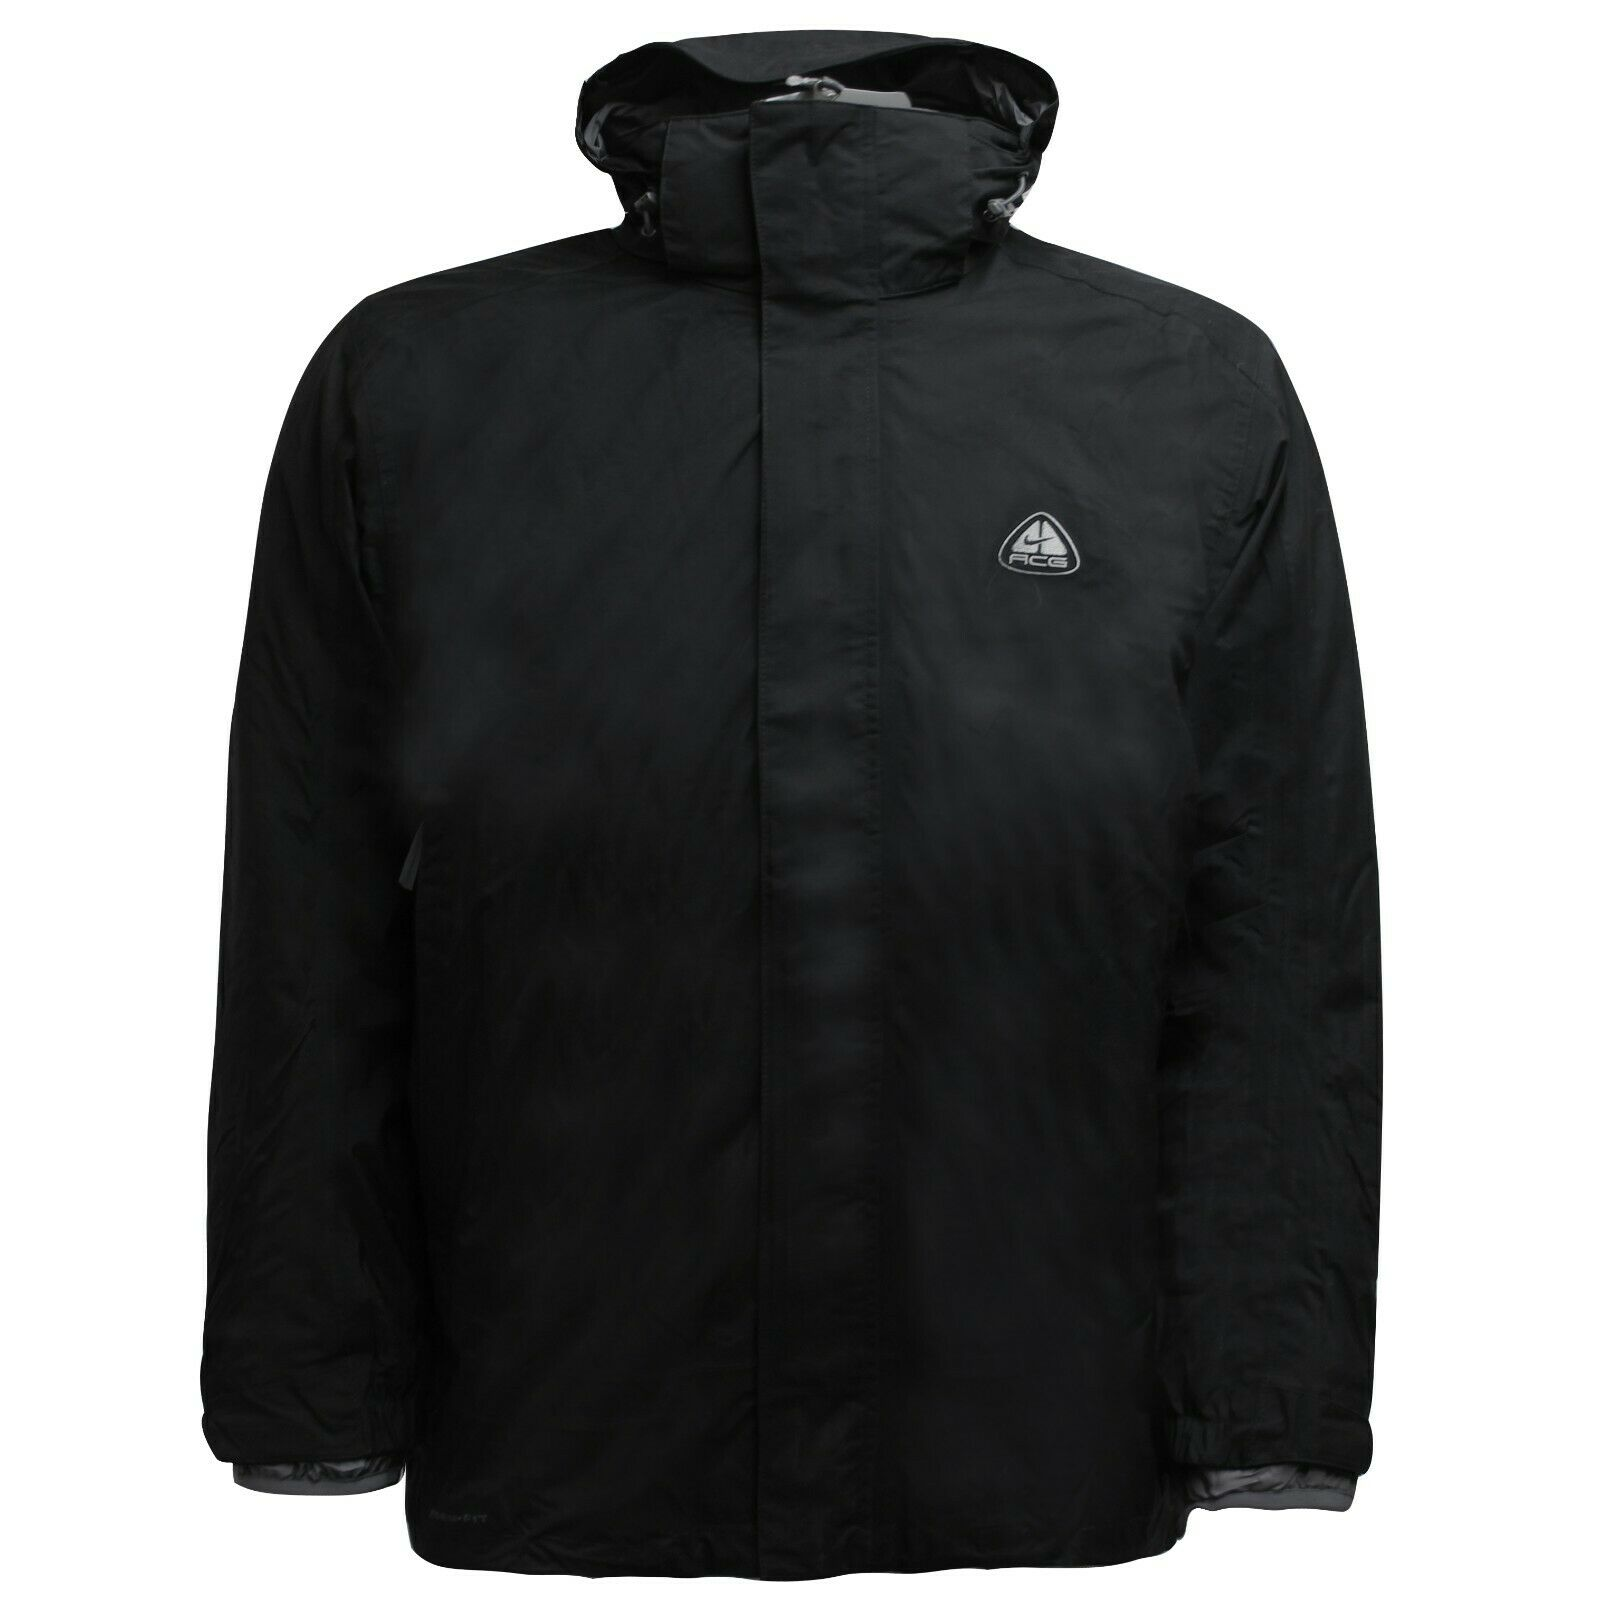 Details about Nike ACG All Conditions Gear Mens Coat 2in1 Waterproof Jacket 188702 010 A18B